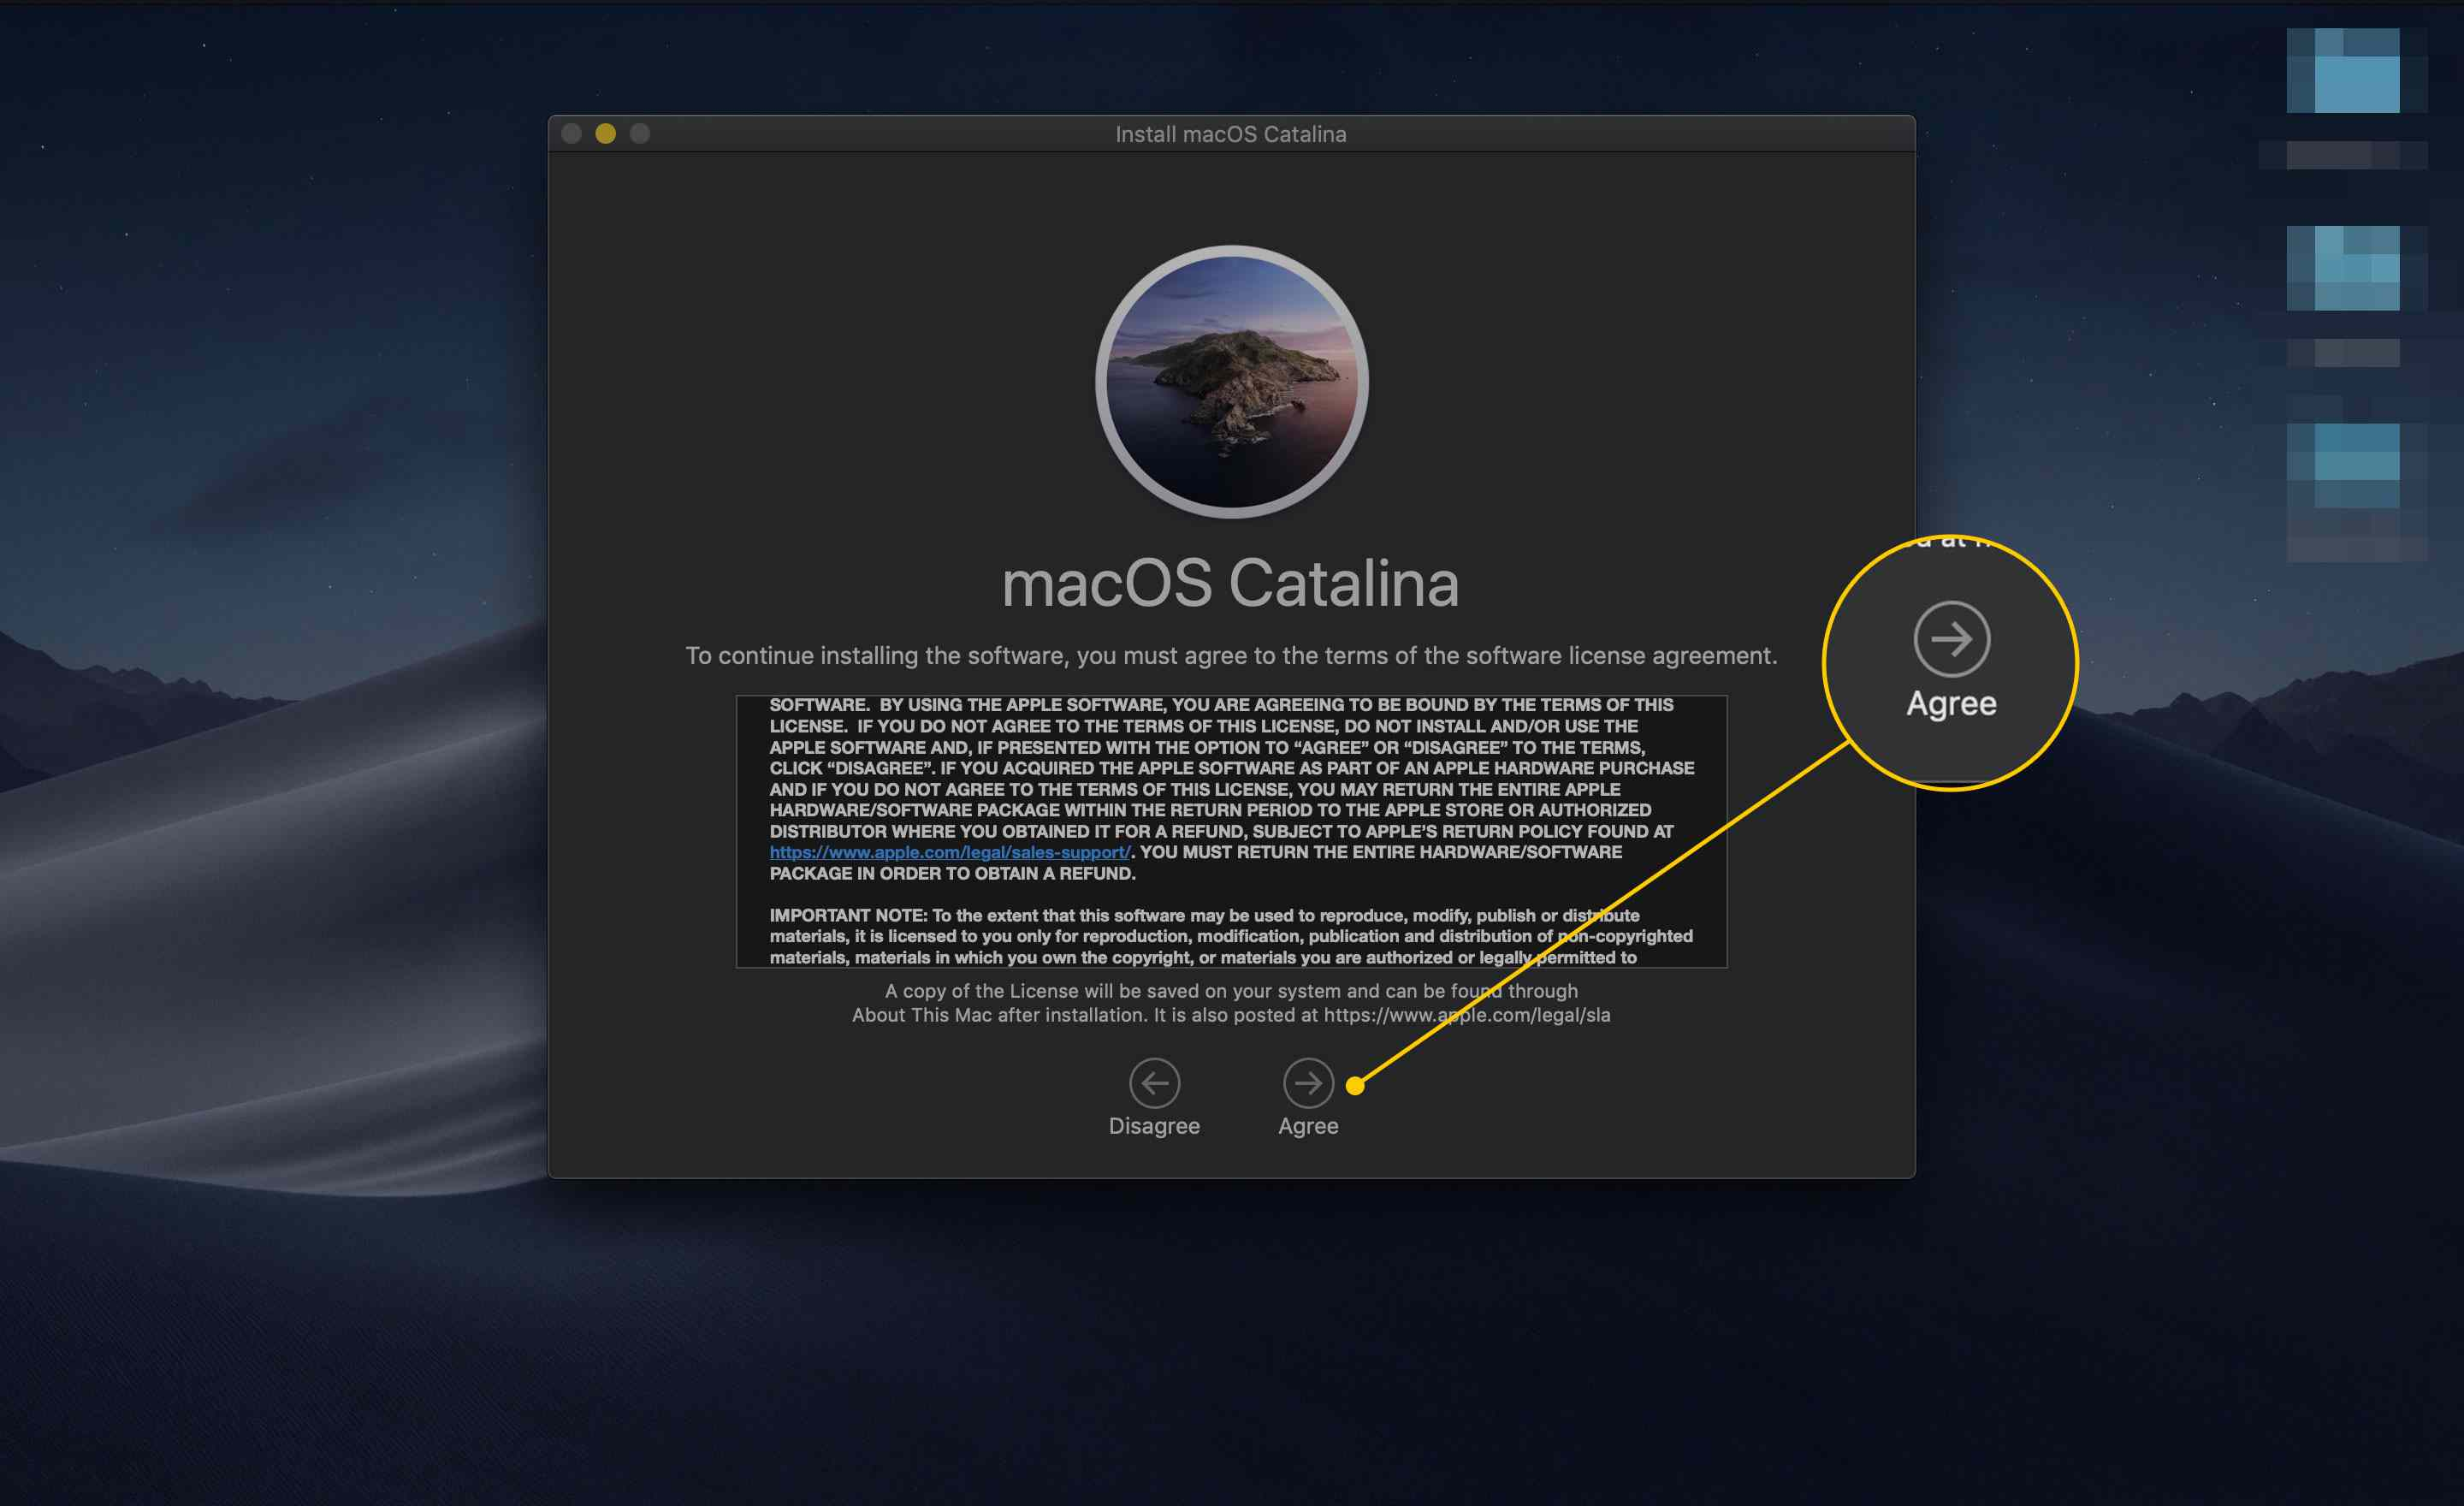 Agree button on the macOS Catalina SLA